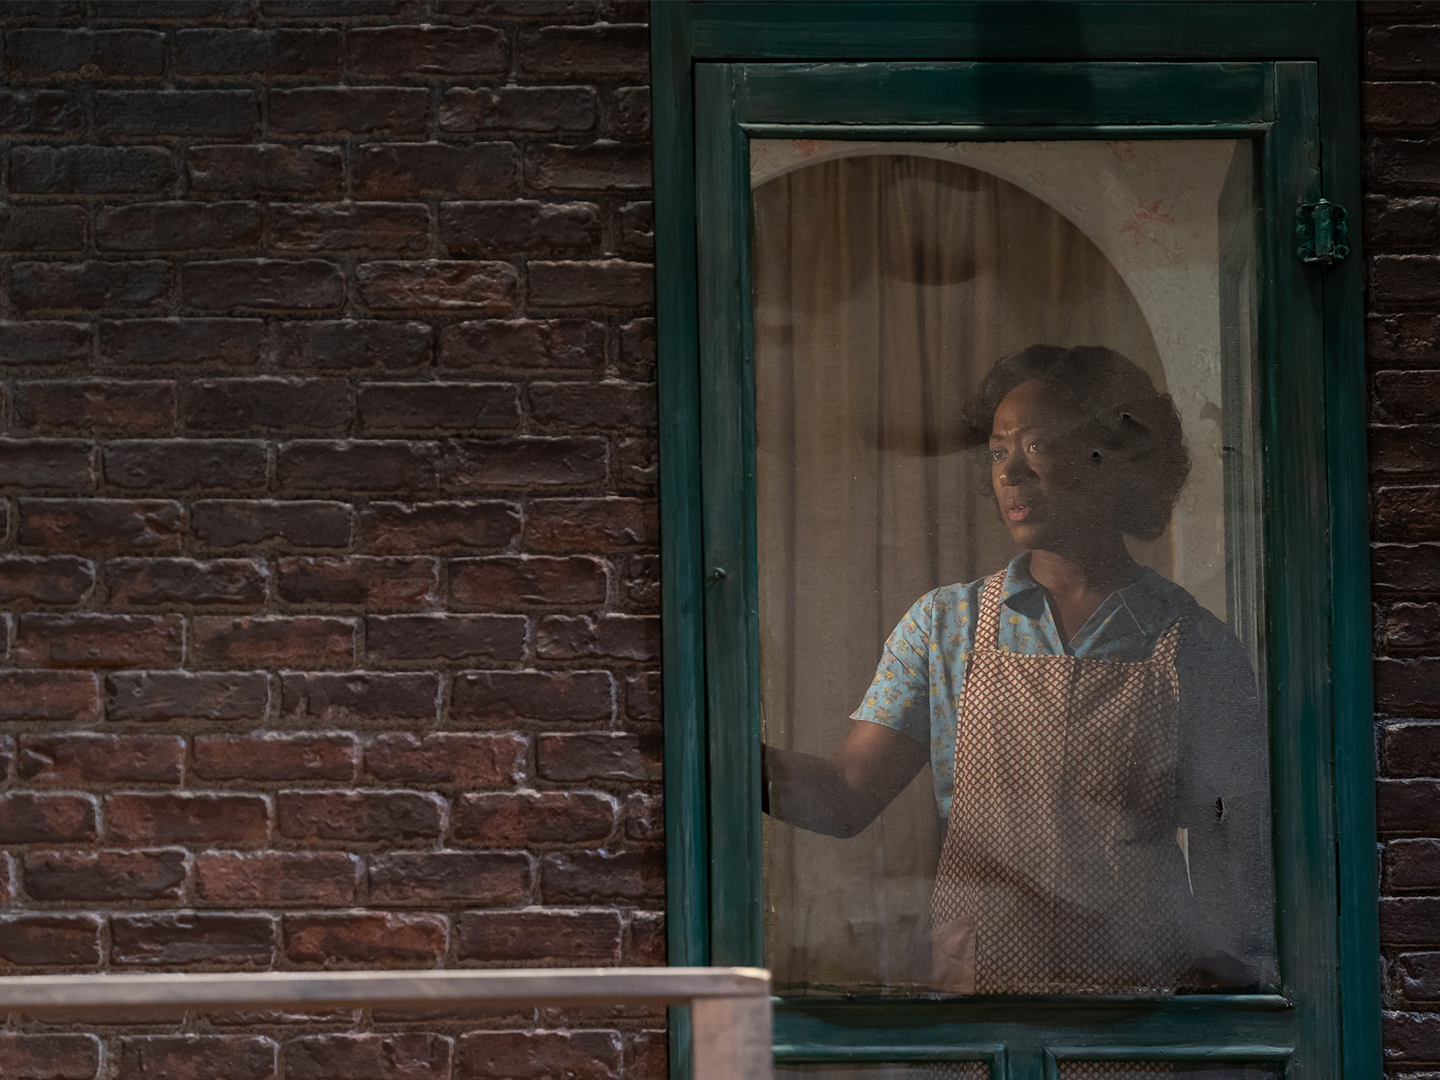 A woman stands inside the screen door of her 1950s row home, peering out into the yard. She wears a short-sleeved blue dress covered by a brown and white apron.